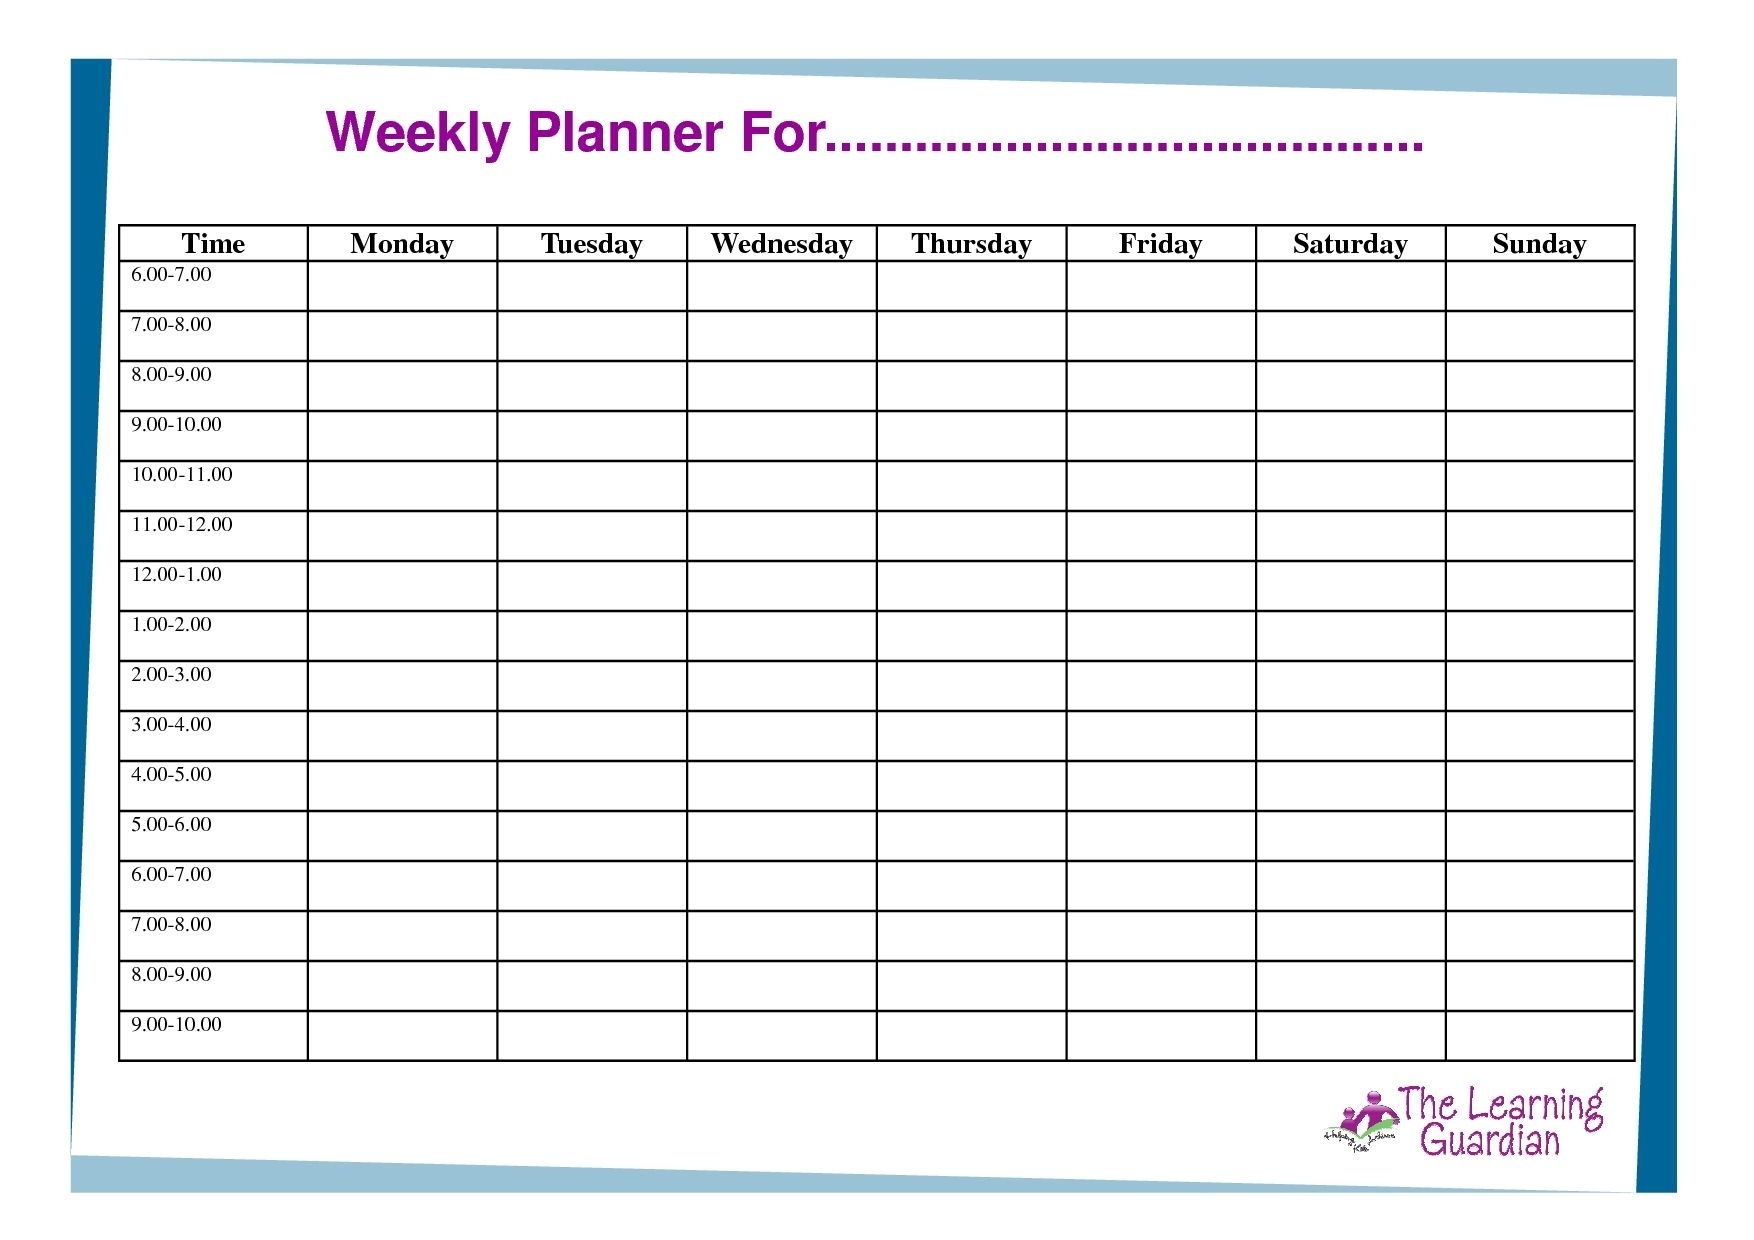 Free Printable Weekly Calendar Templates Planner For Time Incredible for 7-Day Weekly Planner Template Printable